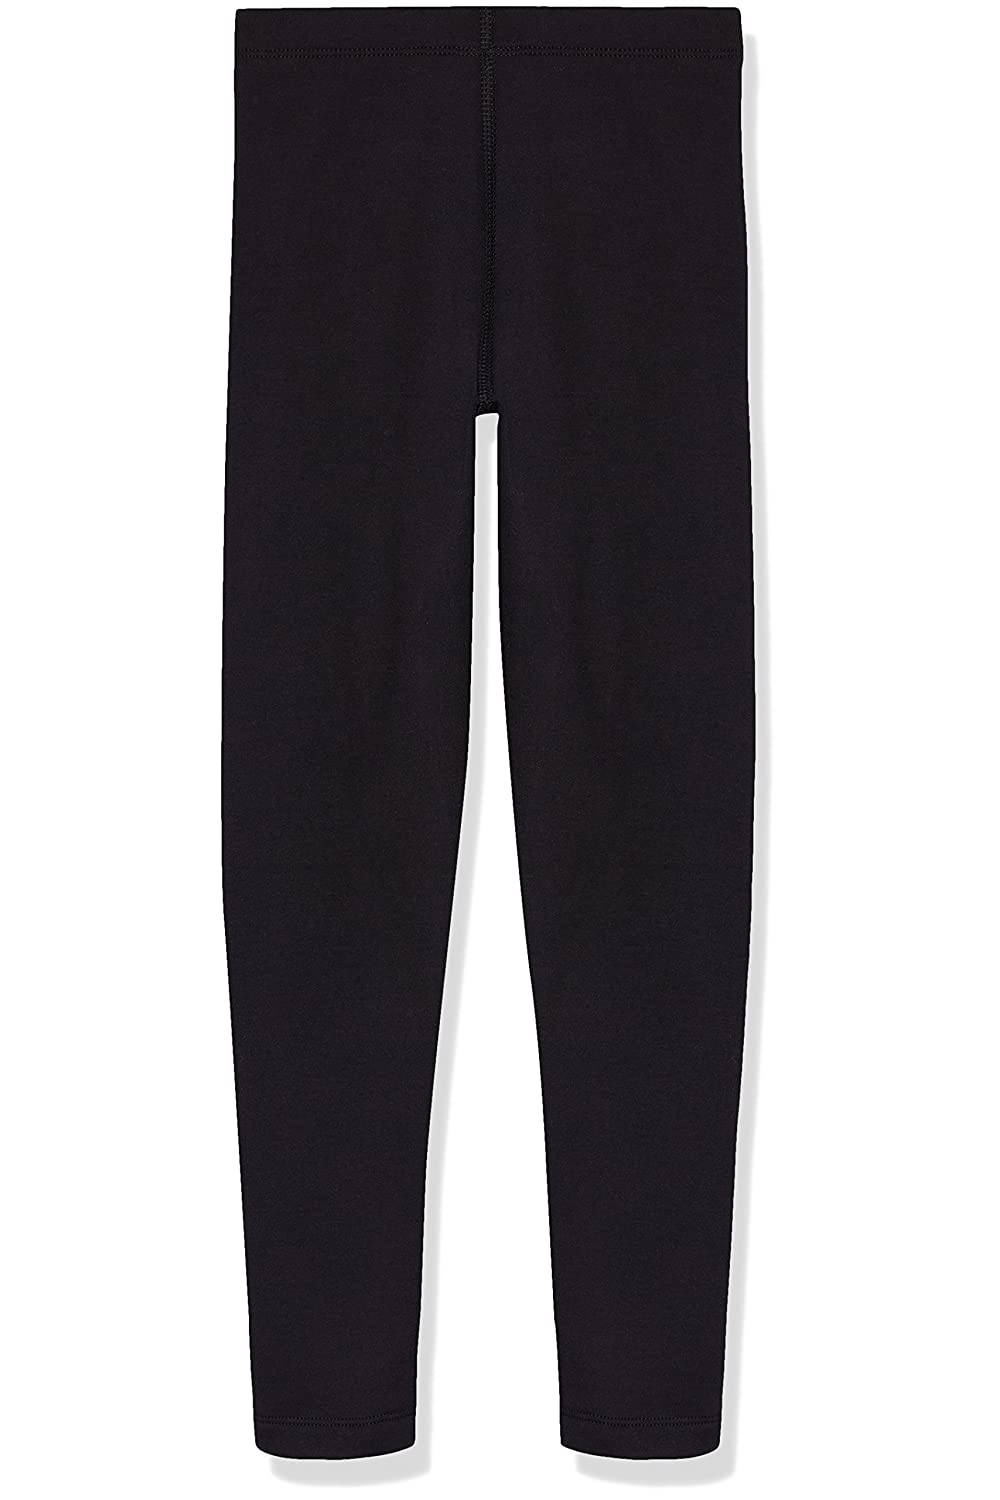 RED WAGON Girls Thermal Trousers